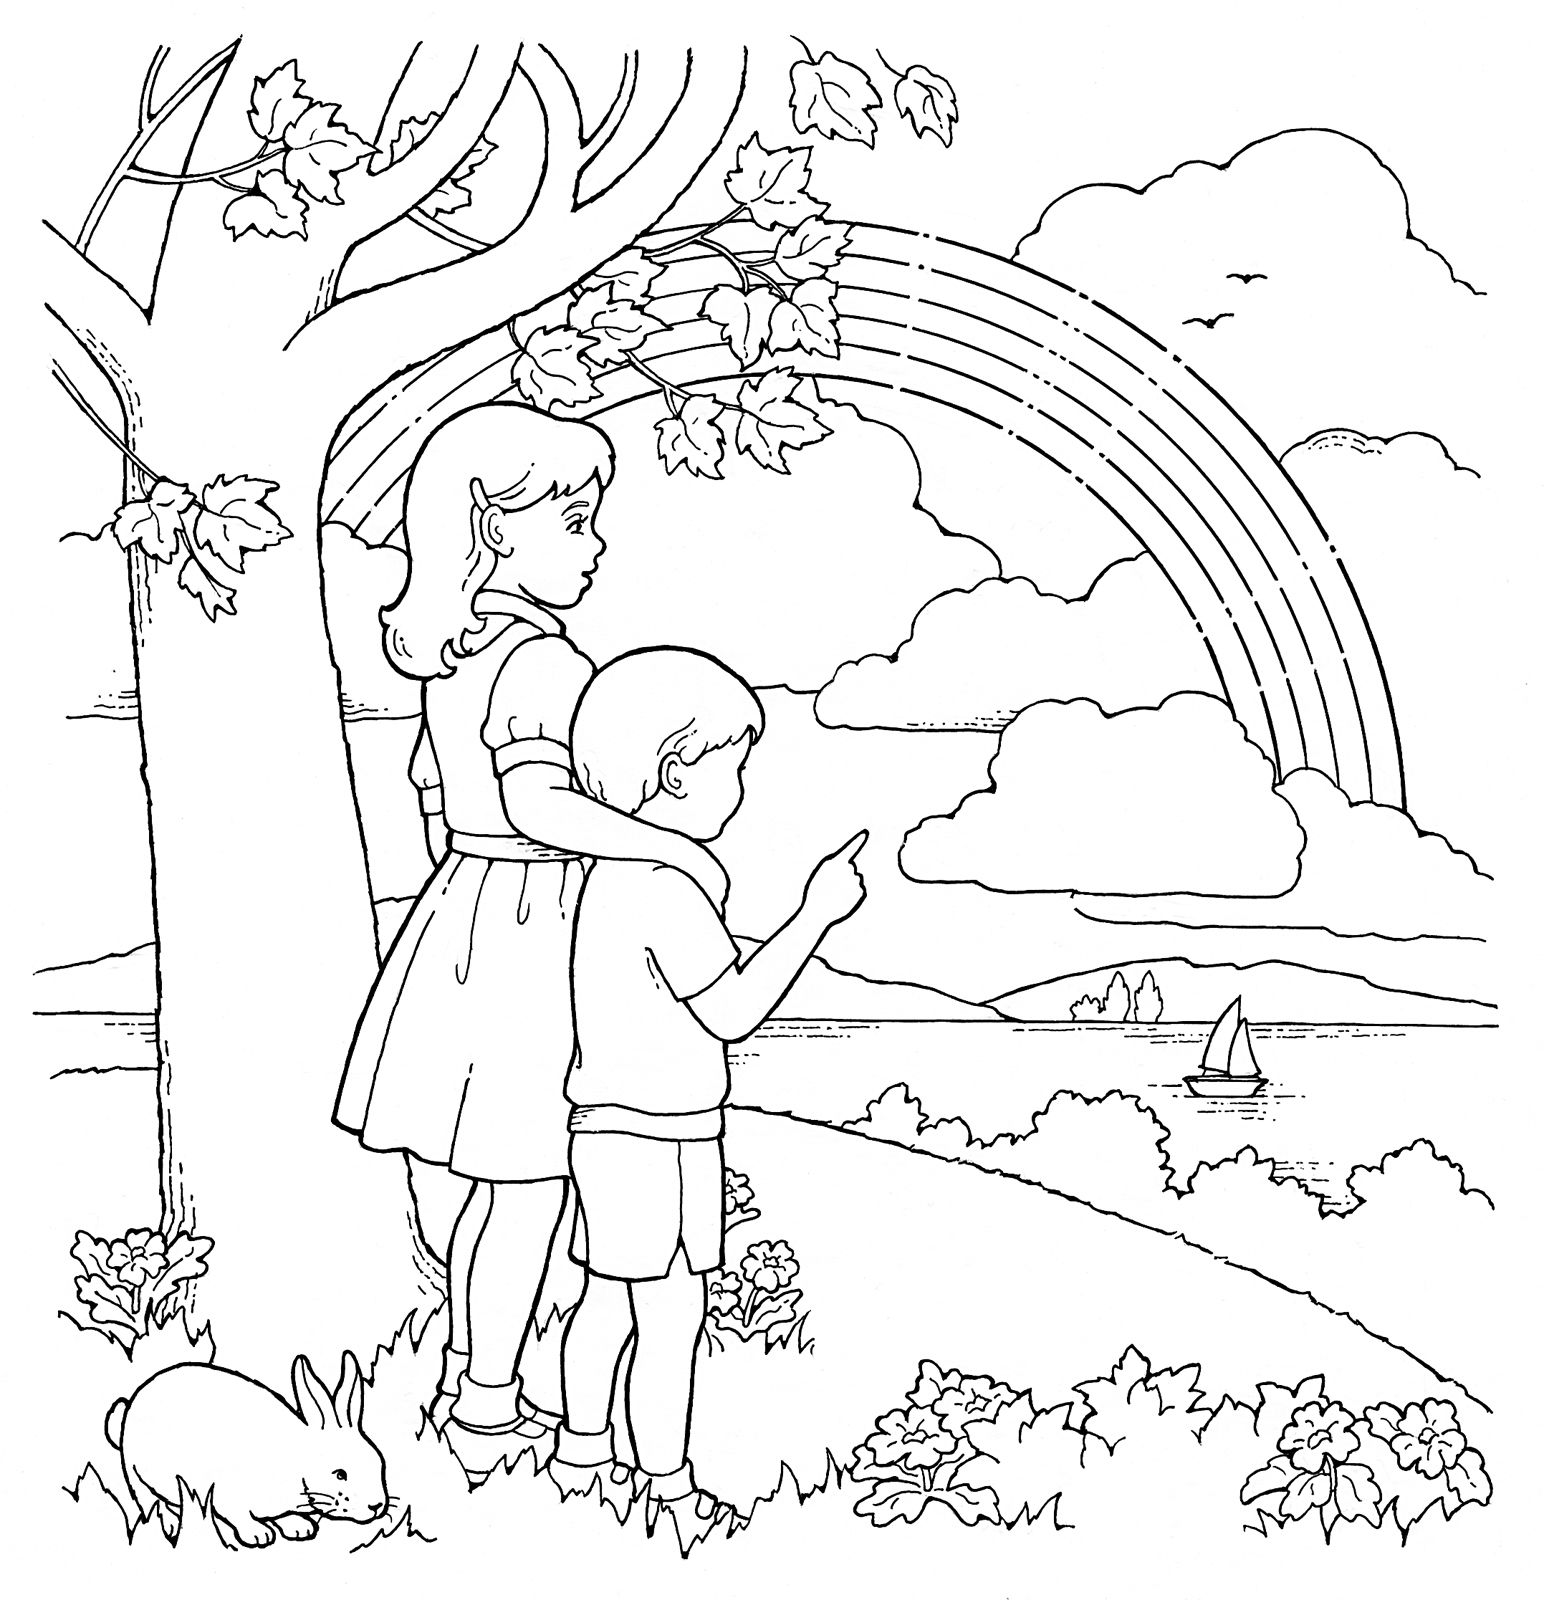 Primary Coloring Page. Children and Rainbow. #ldsprimary